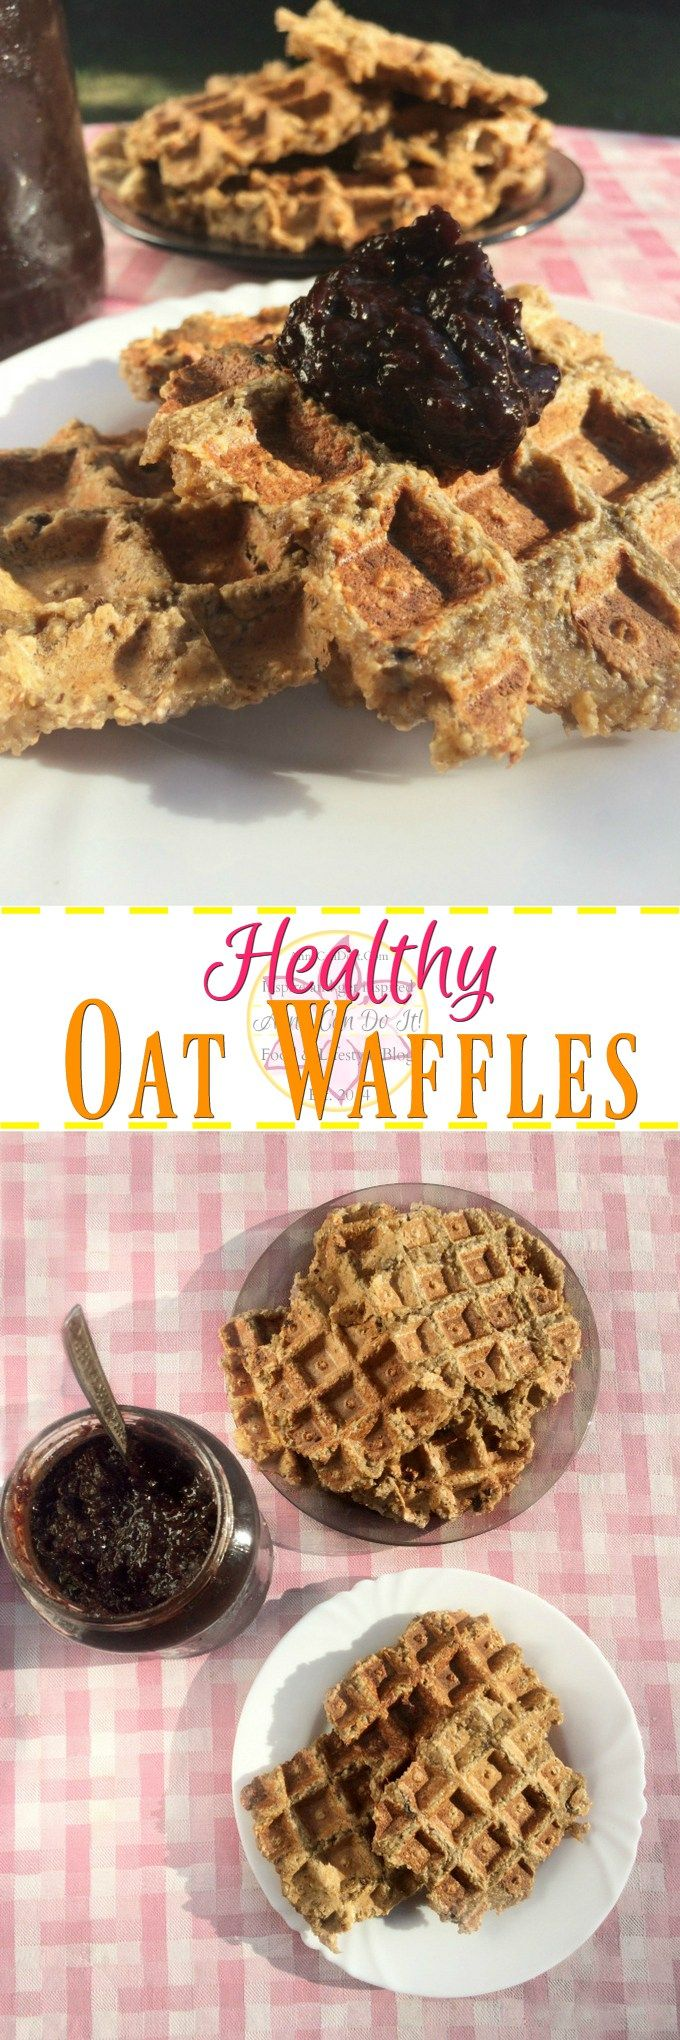 Healthy Oat Waffles - Anna Can Do It!